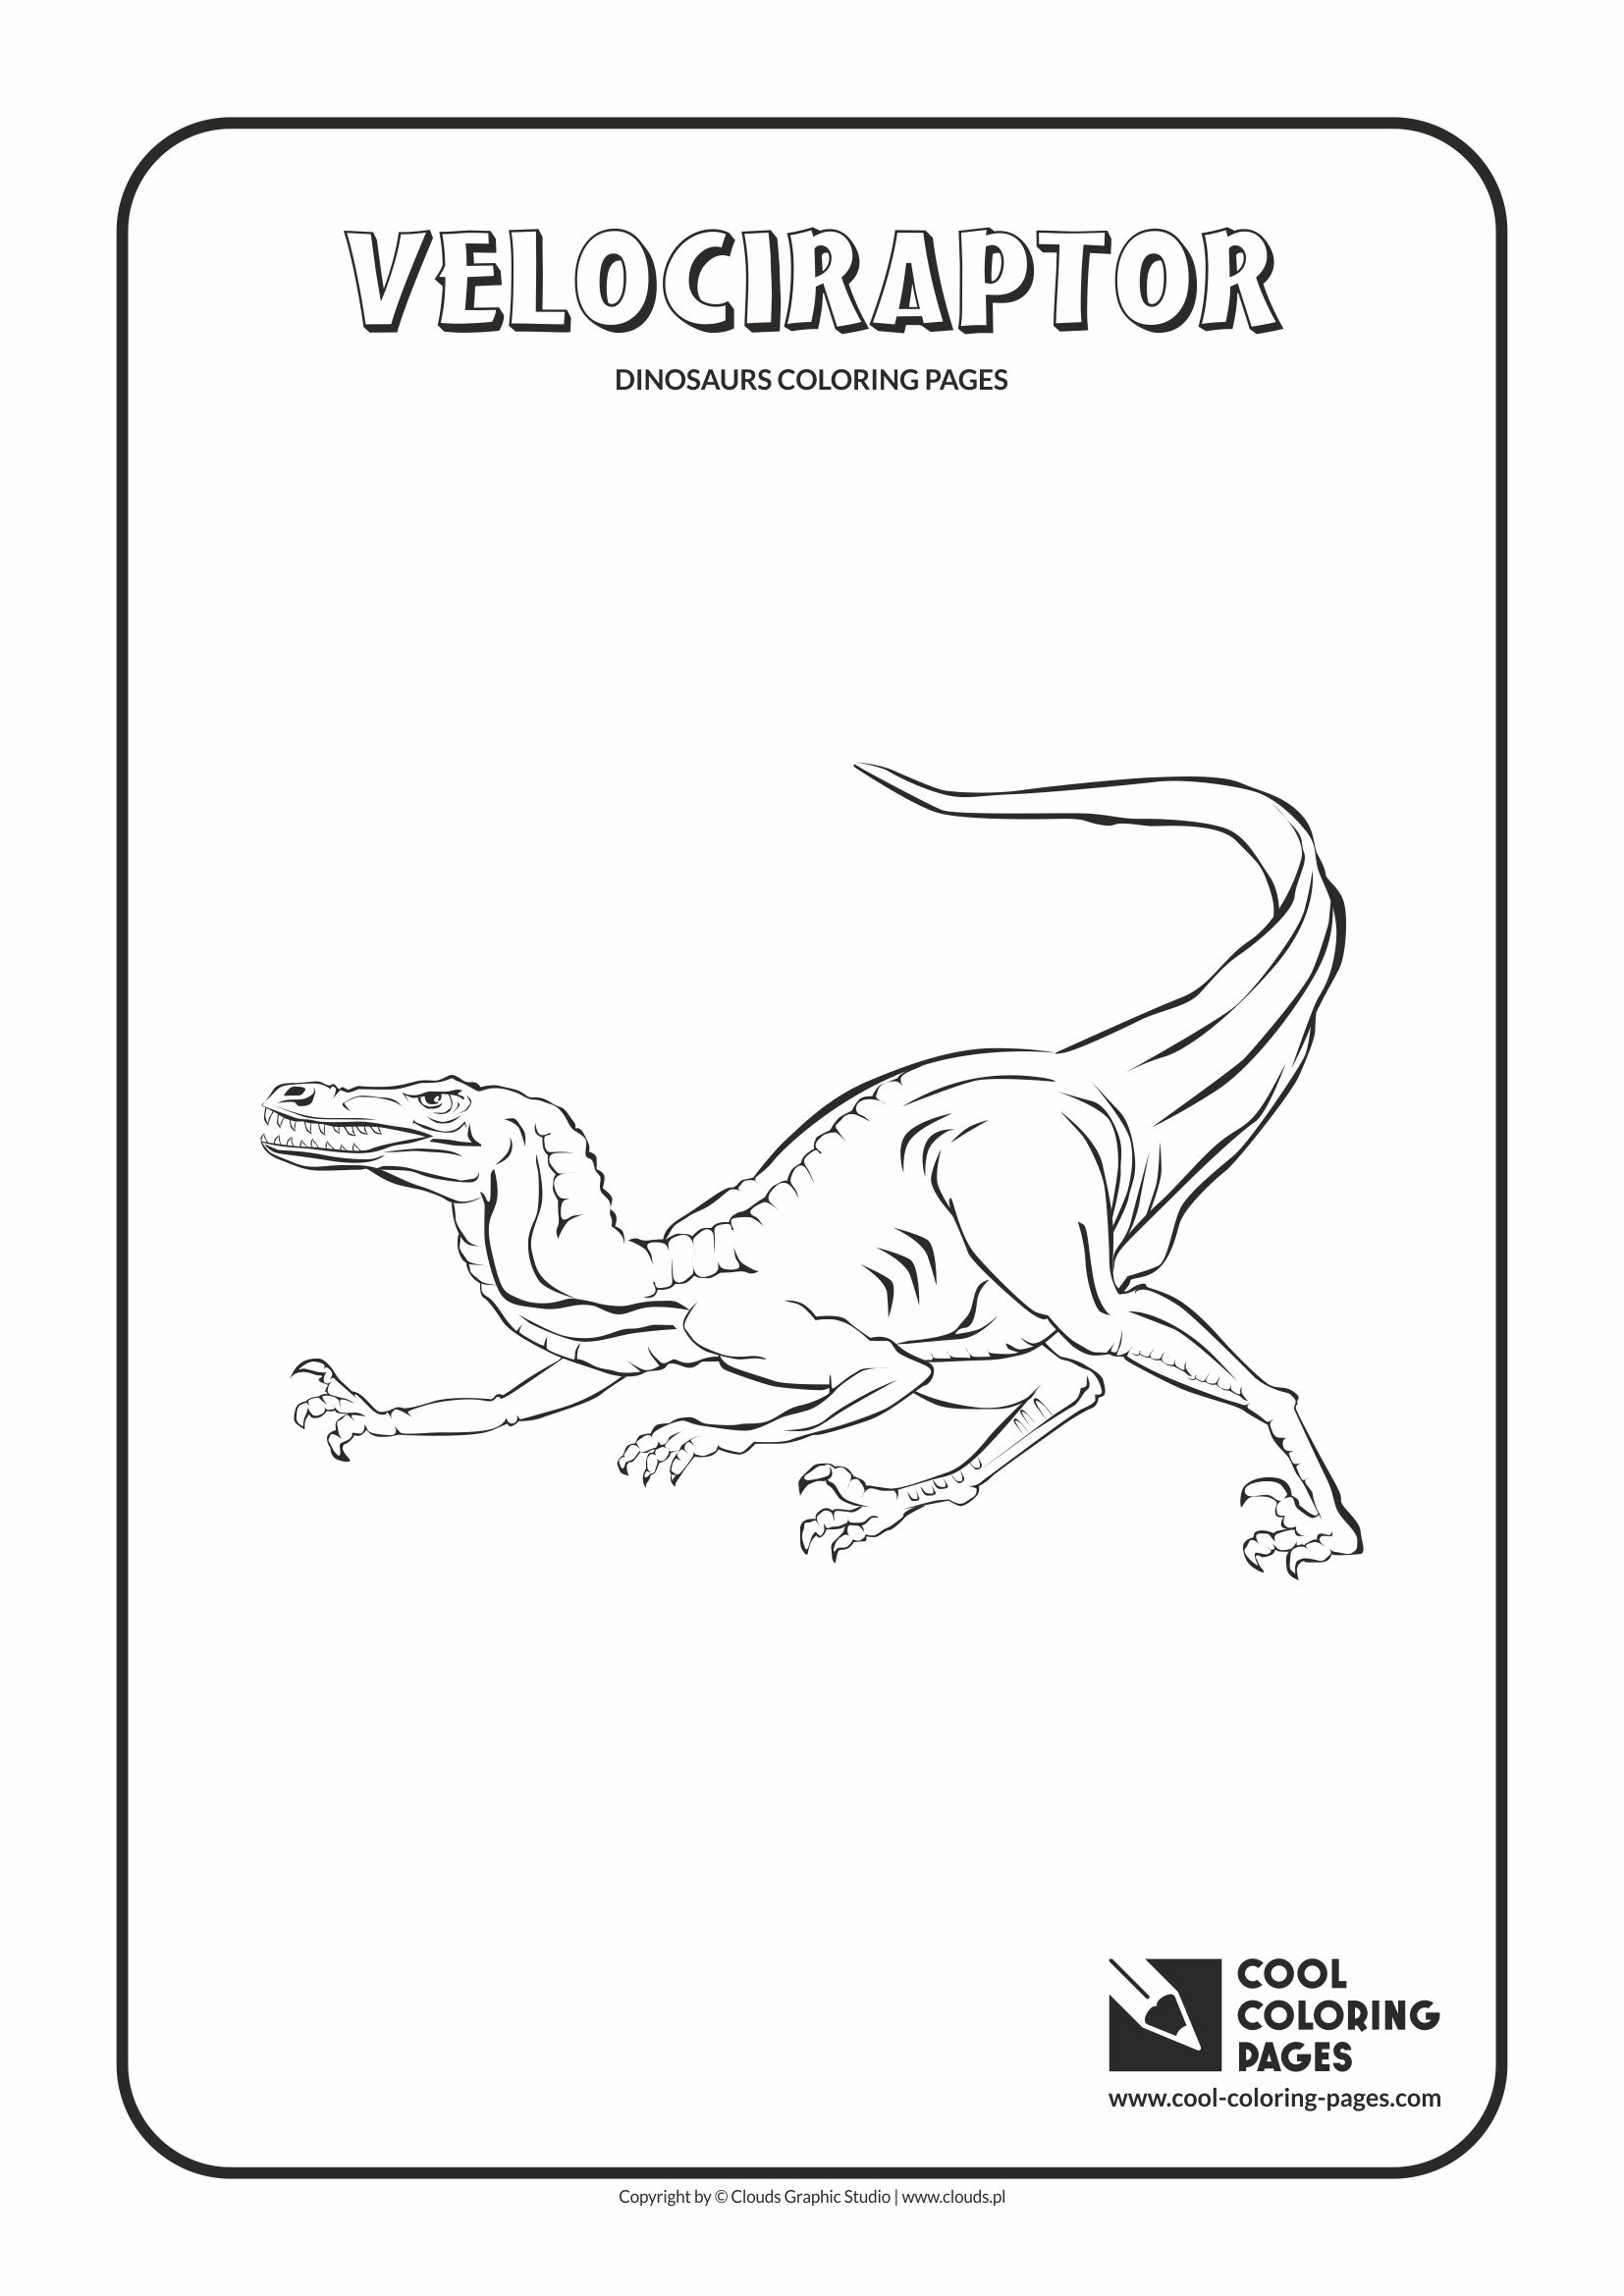 Cool Coloring Pages - Animals / Velociraptor / Coloring page with velociraptor